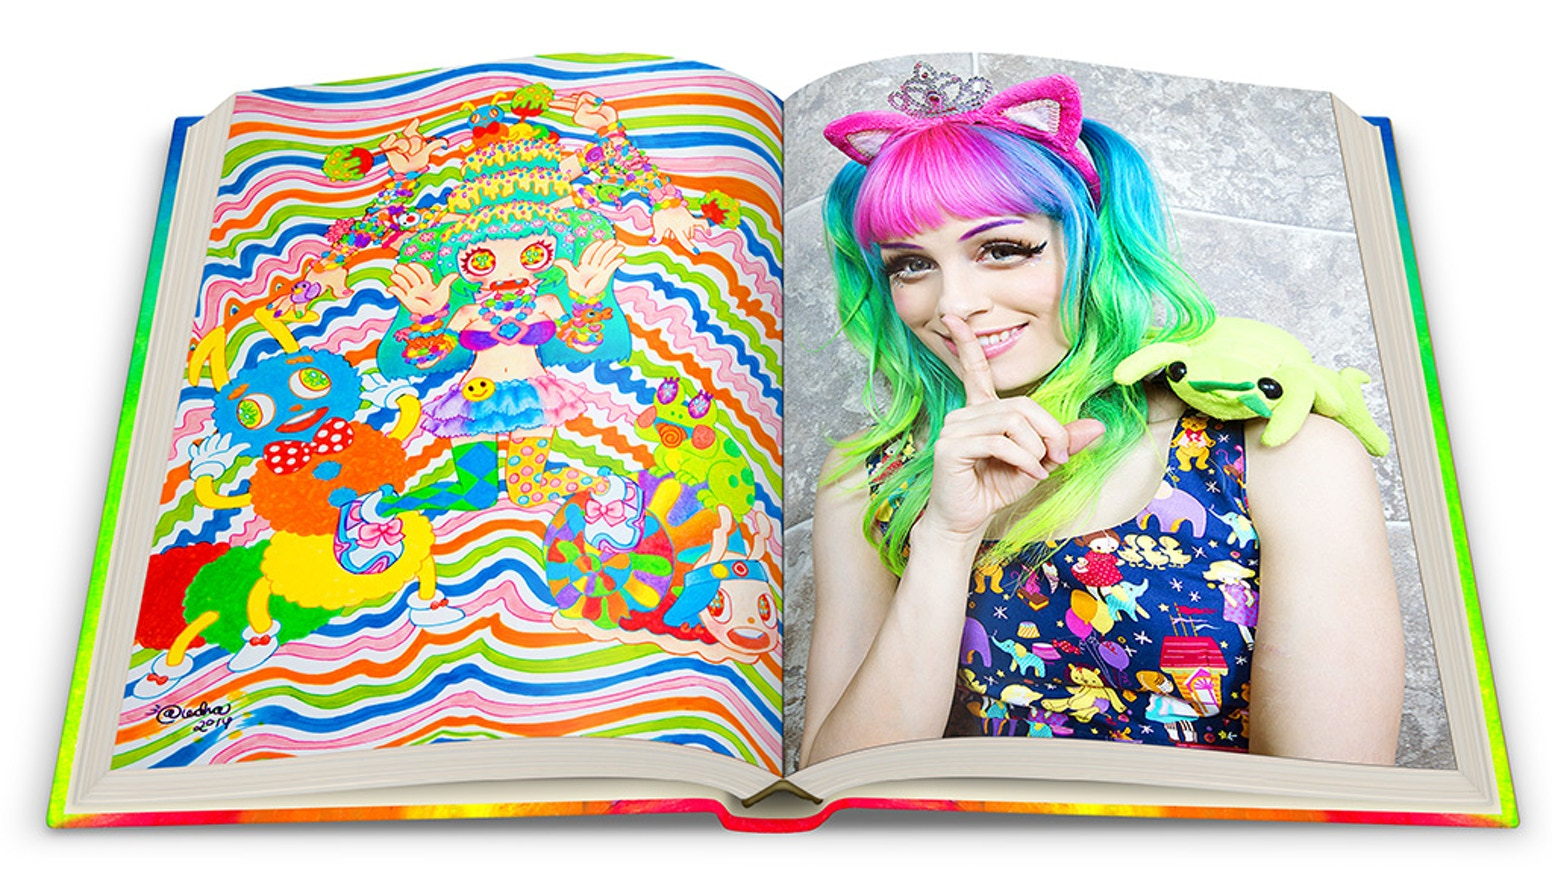 Beautifully shot, designed & produced hardcover coffee table art book of Audra colorful kawaii style, illustrations, desserts & nudes.